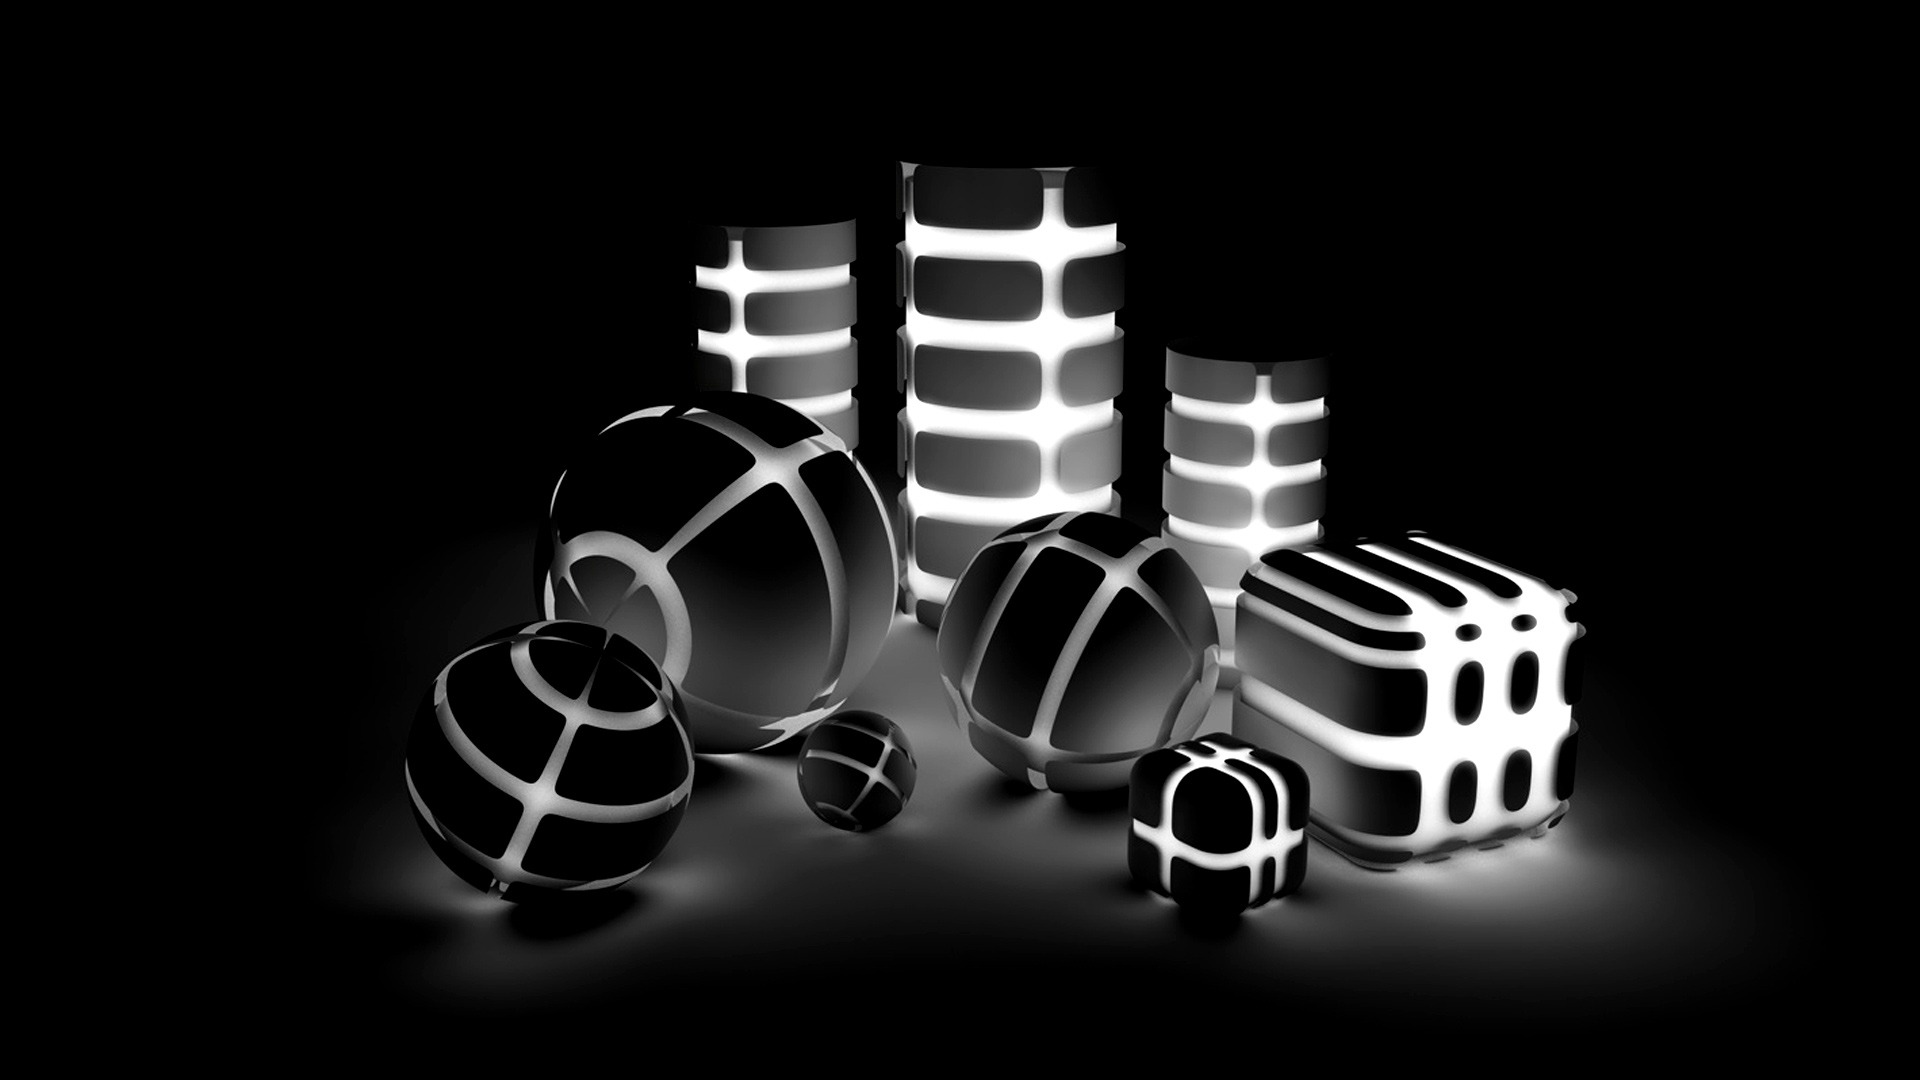 Black And White Hd Wallpapers Black Background